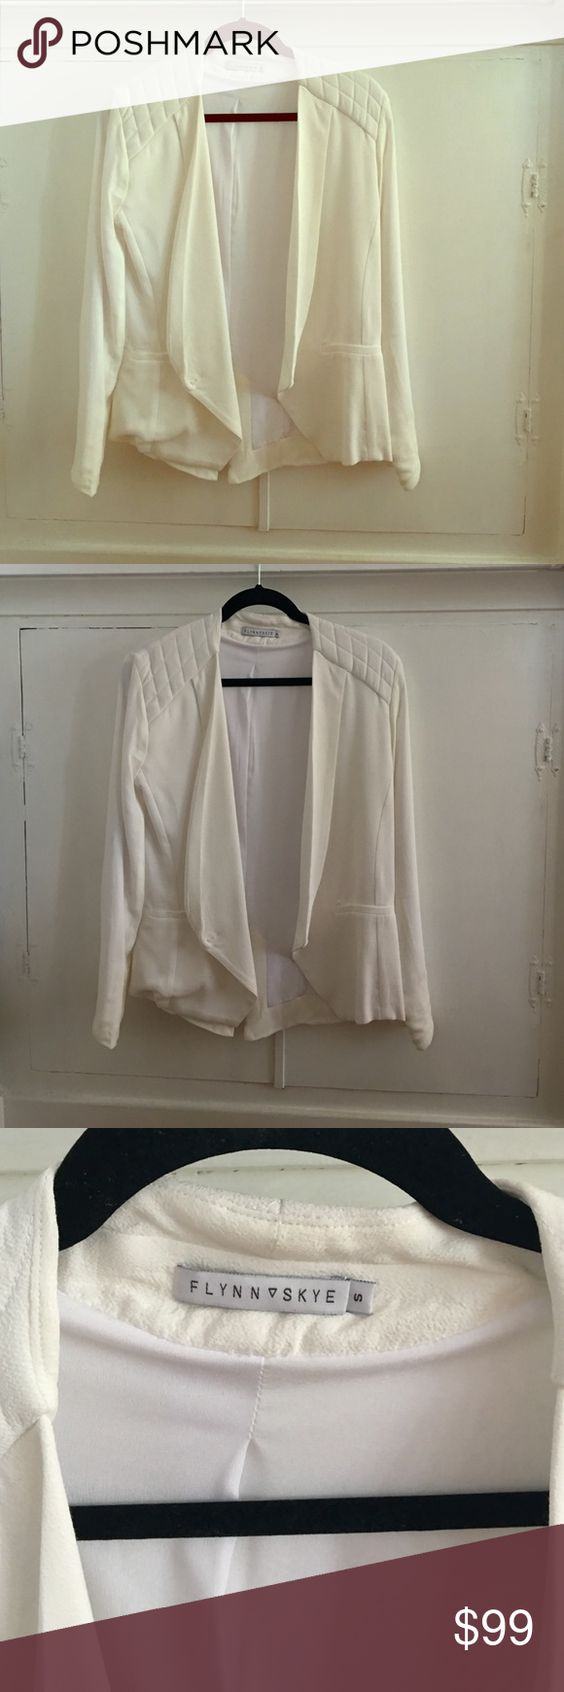 BNWOT Flynn Skye White Summer Blazer S This is in perfect condition, brand new, and amazing. Please see my closet policies. Thanks! Flynn Skye Jackets & Coats Blazers